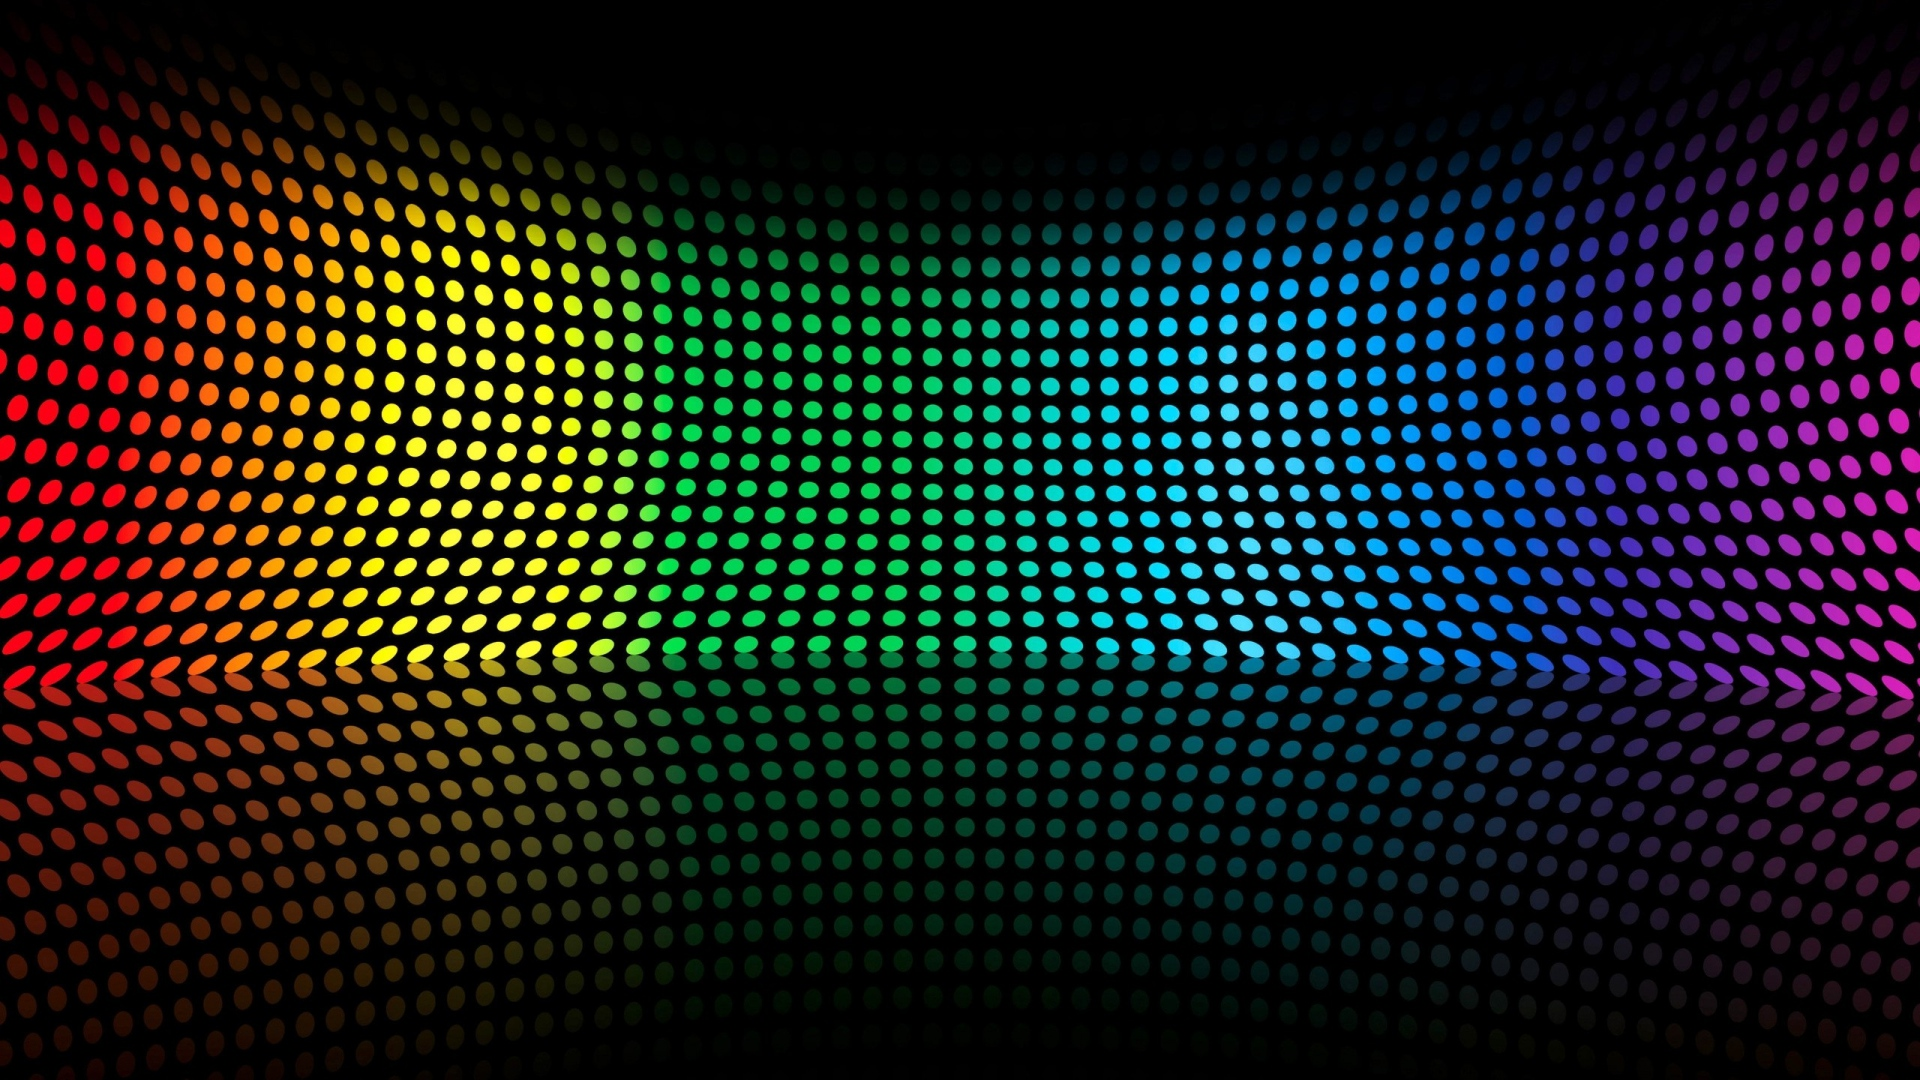 Colorful Curved Disco Light Bending Pattern Wallpaper WallpapersByte 1920x1080